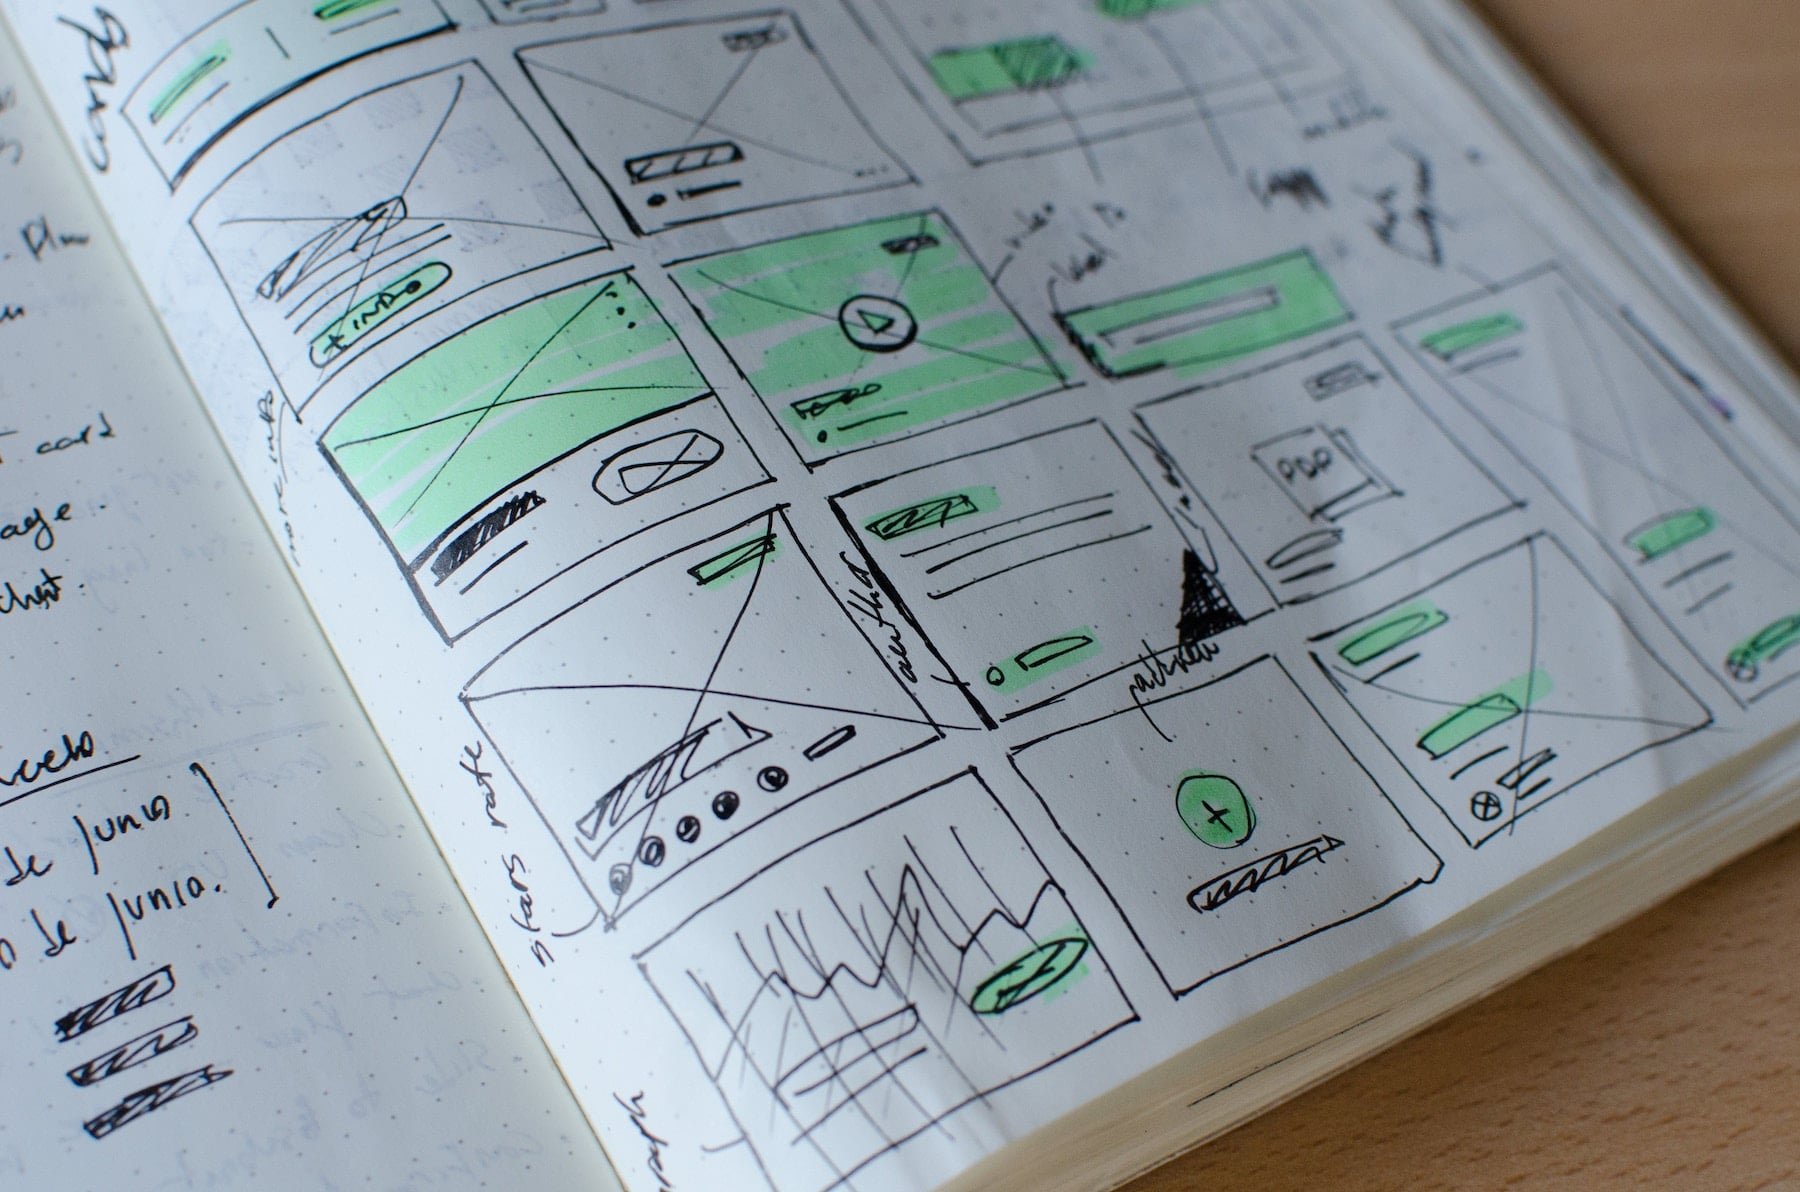 Design drawings of a website template in a book.